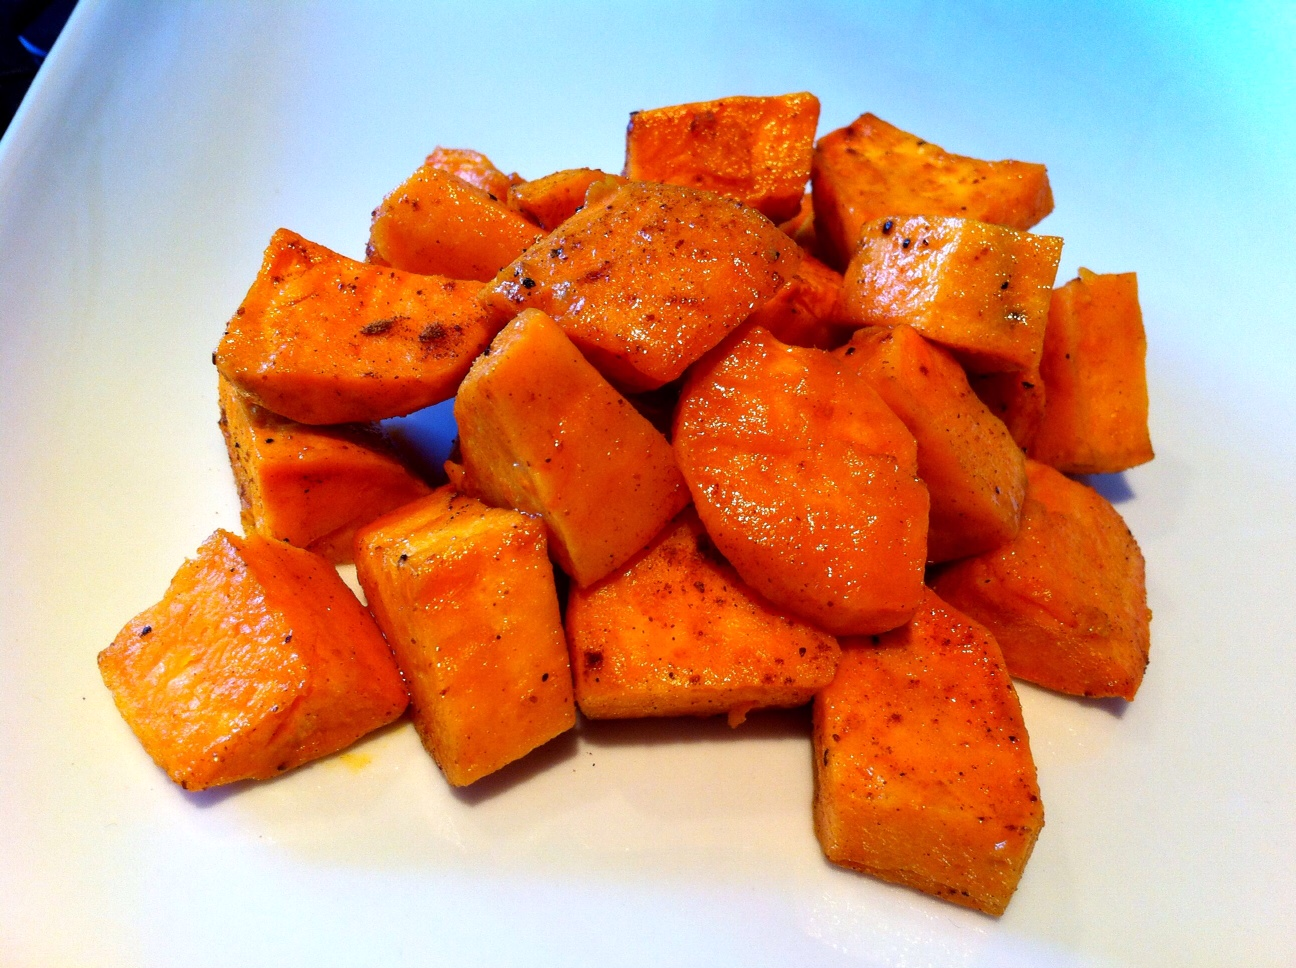 Roasted Sweet Potatoes with Three Spice Blend